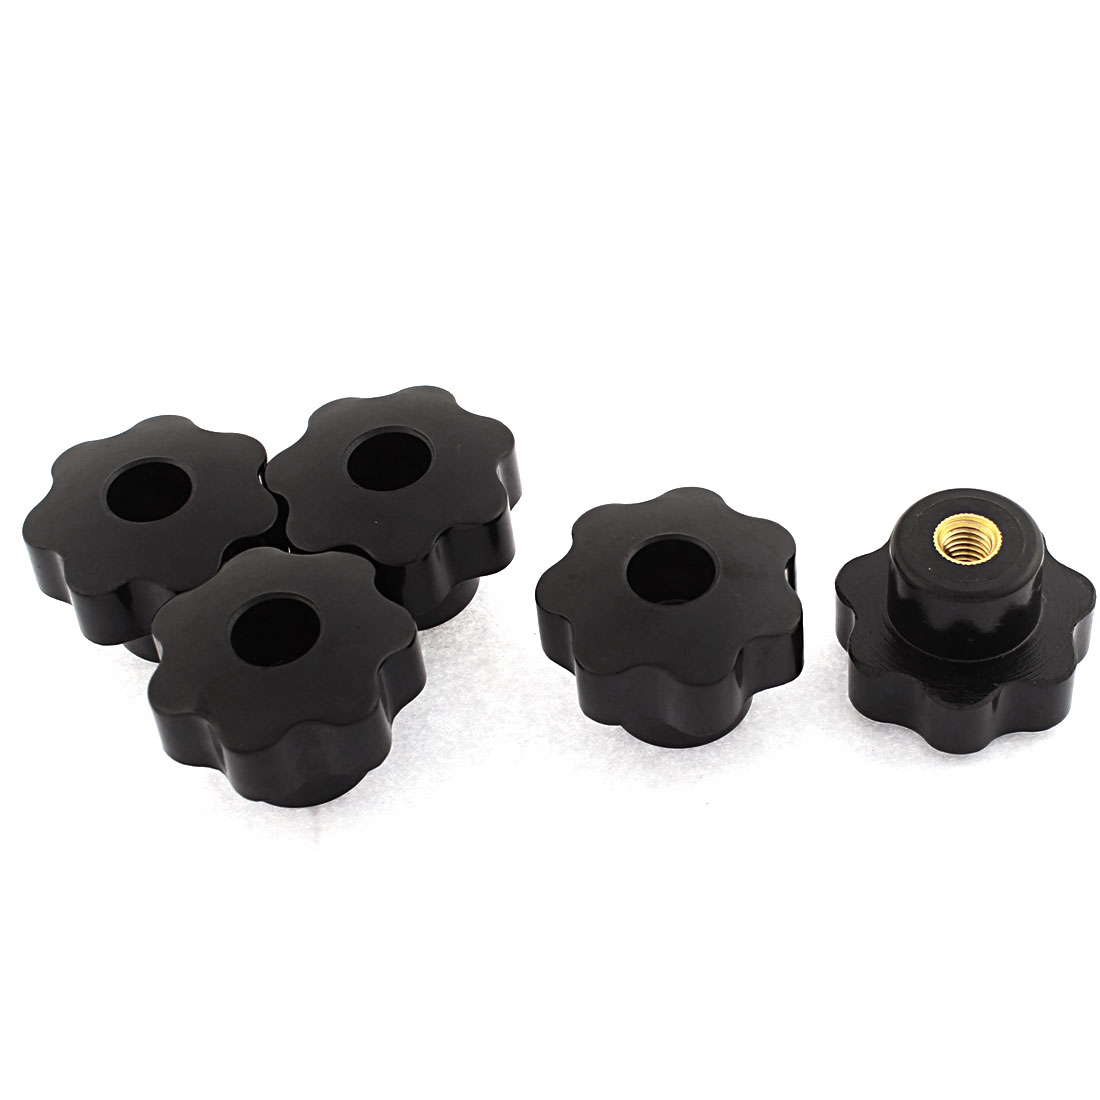 5pcs M8 Female Thread 38mm x 28mm Black Plastic Star Head Screw On Machinery Clamping Knob Grip